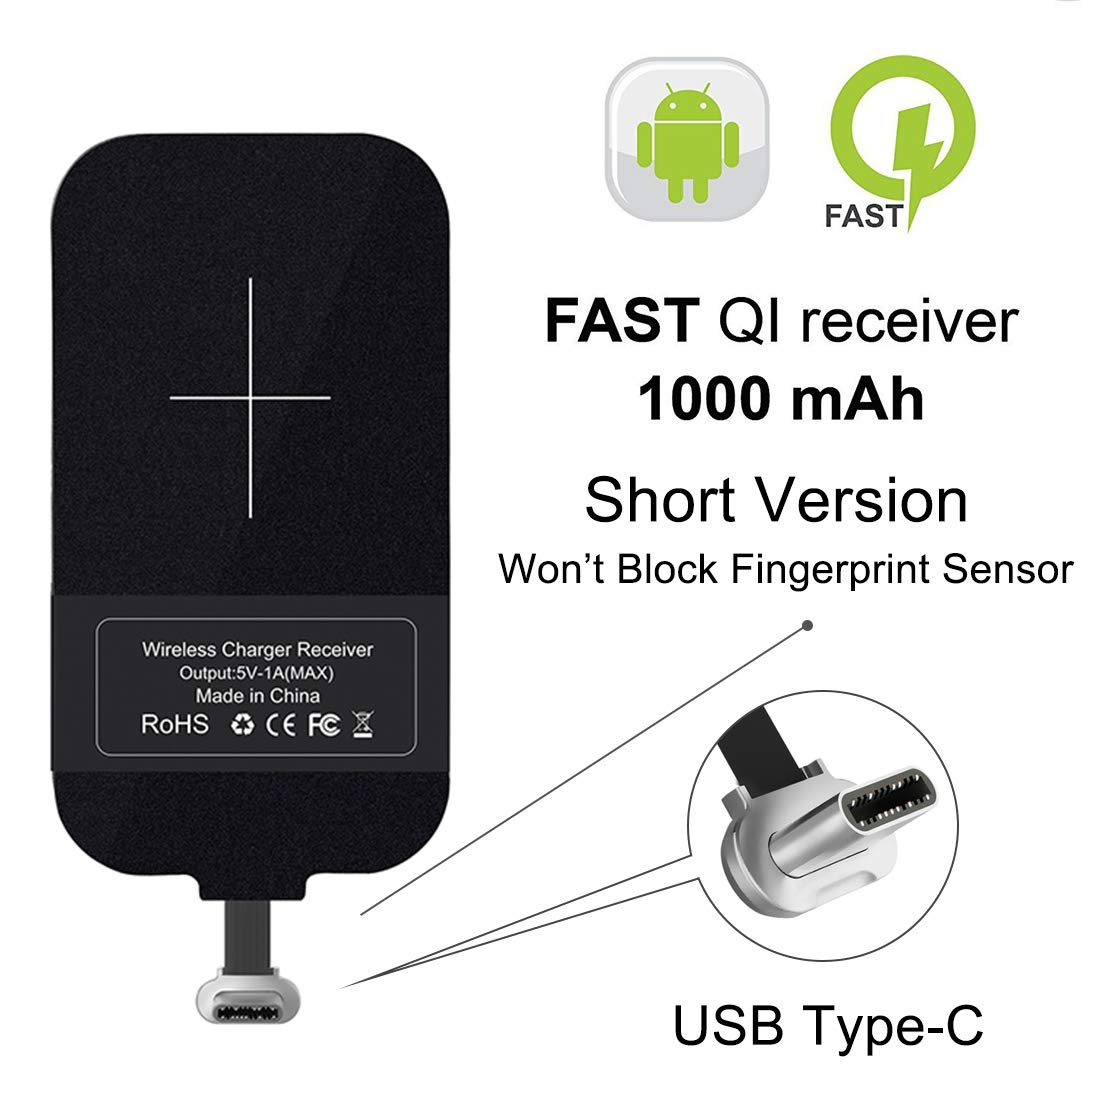 HF-U3-WCR: Wireless Charging Receiver,QI Wireless Charger Receiver Module with Type-C